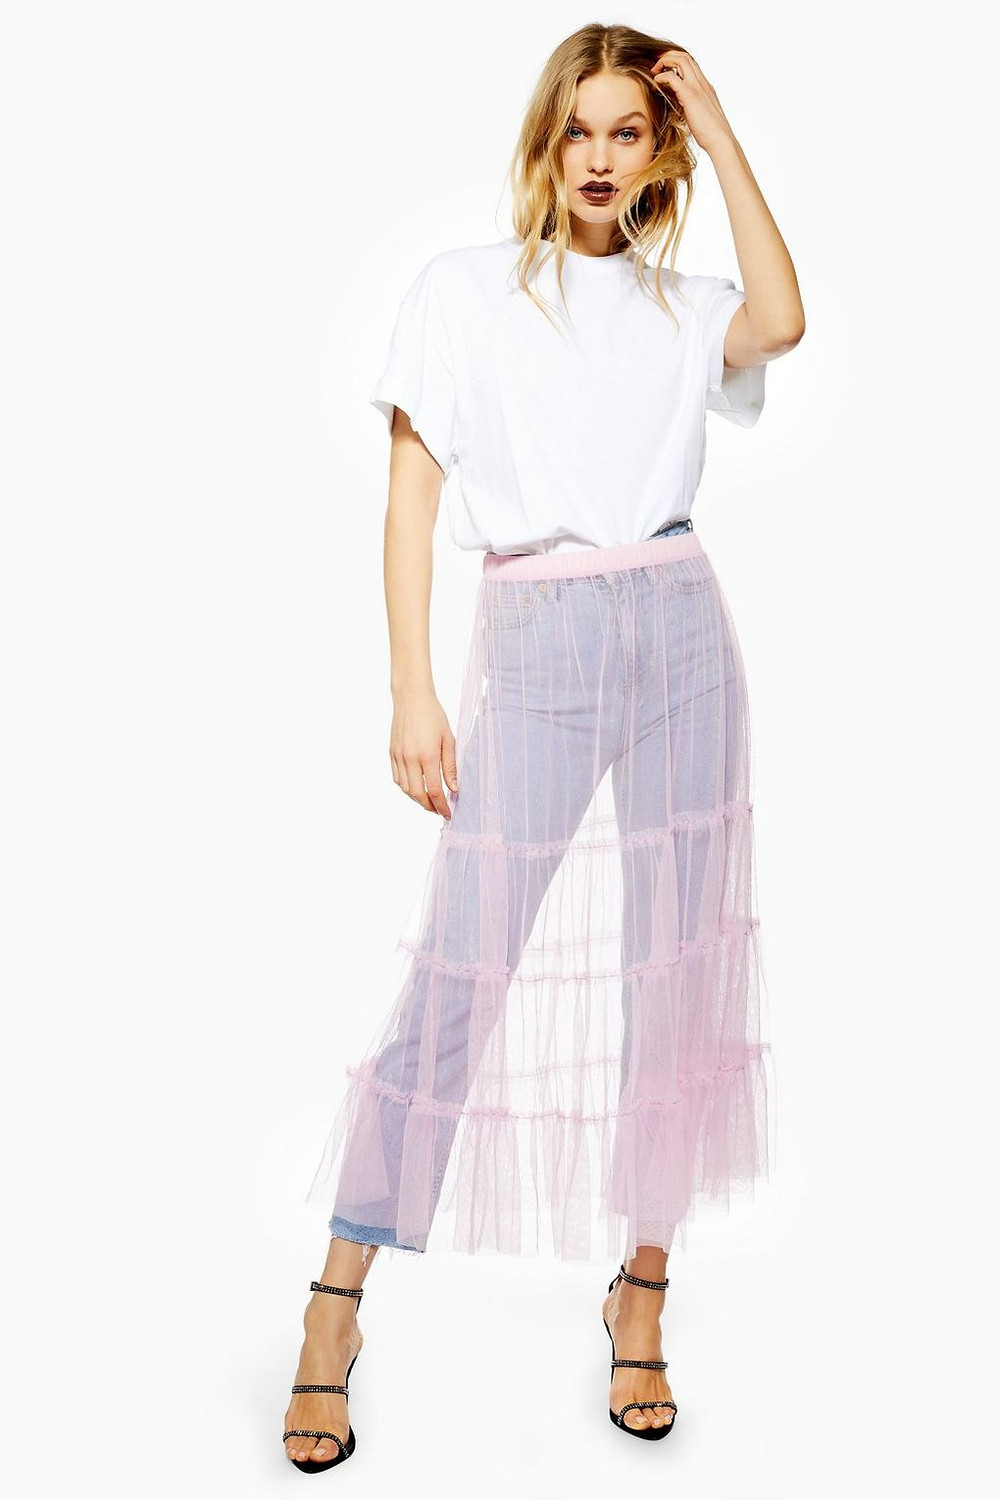 Tiered Tulle Midi Skirt (€7)